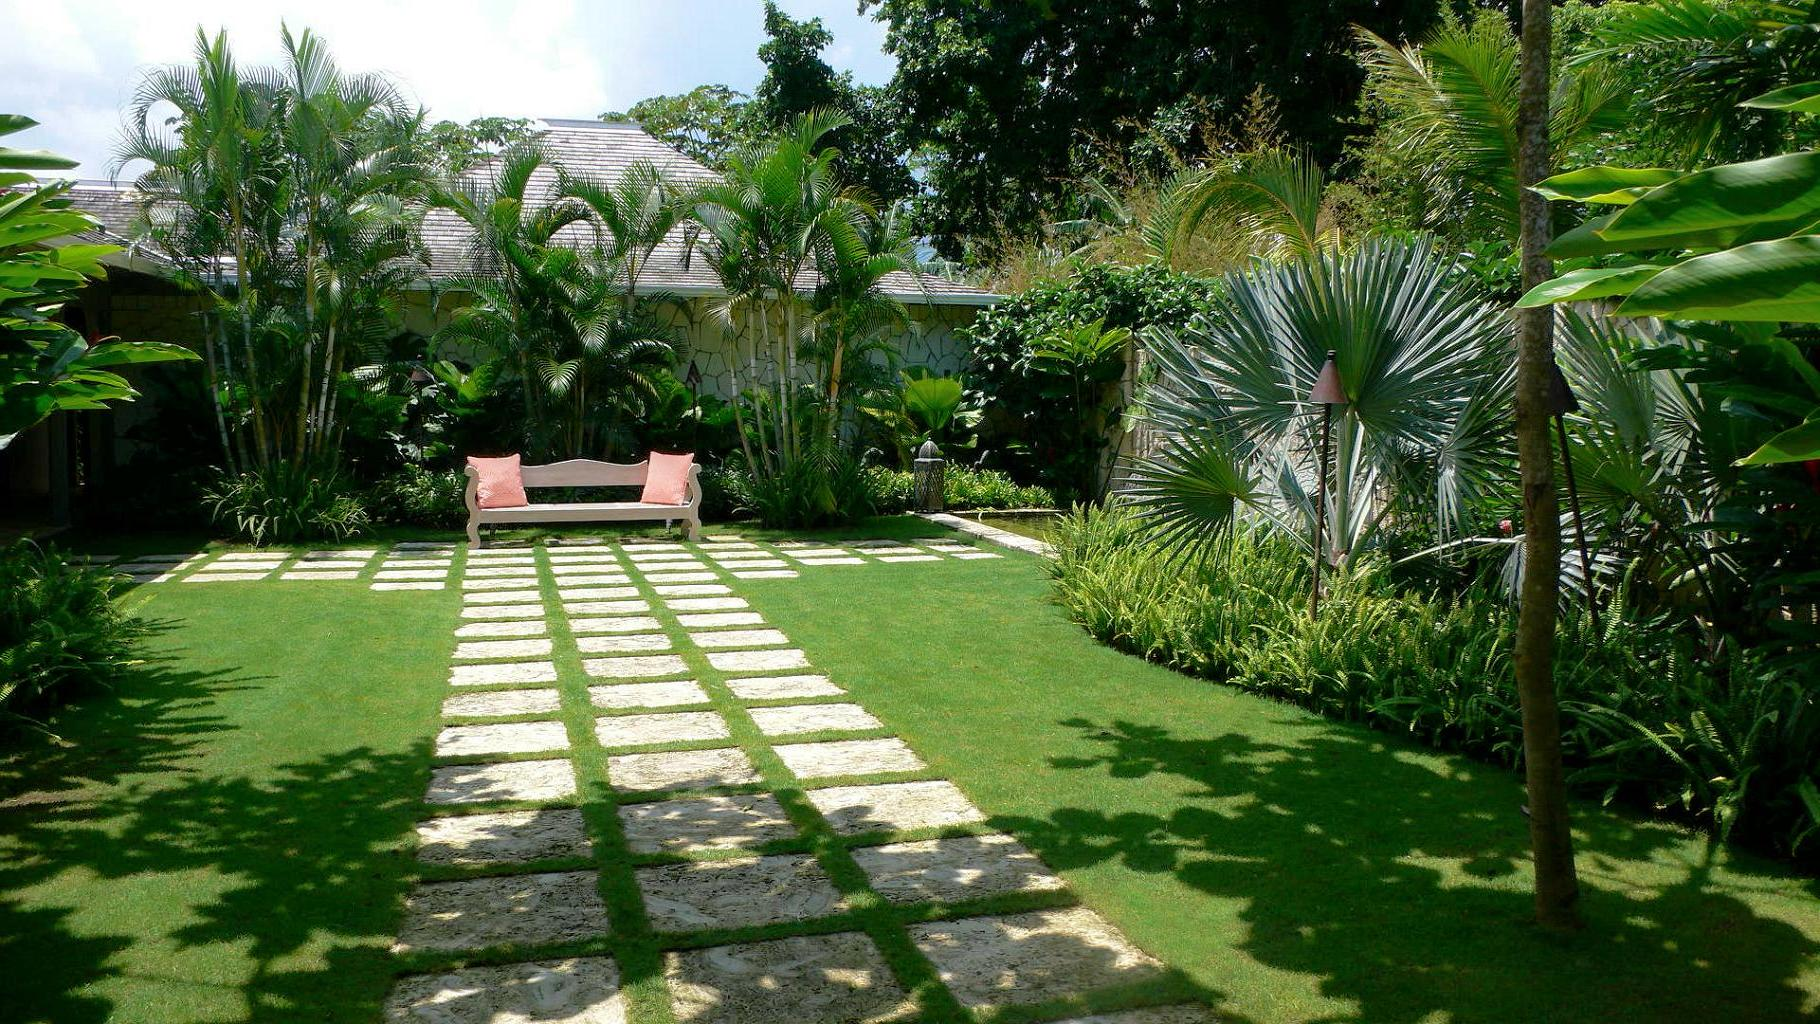 tropical garden design landscaping in brisbane queensland au